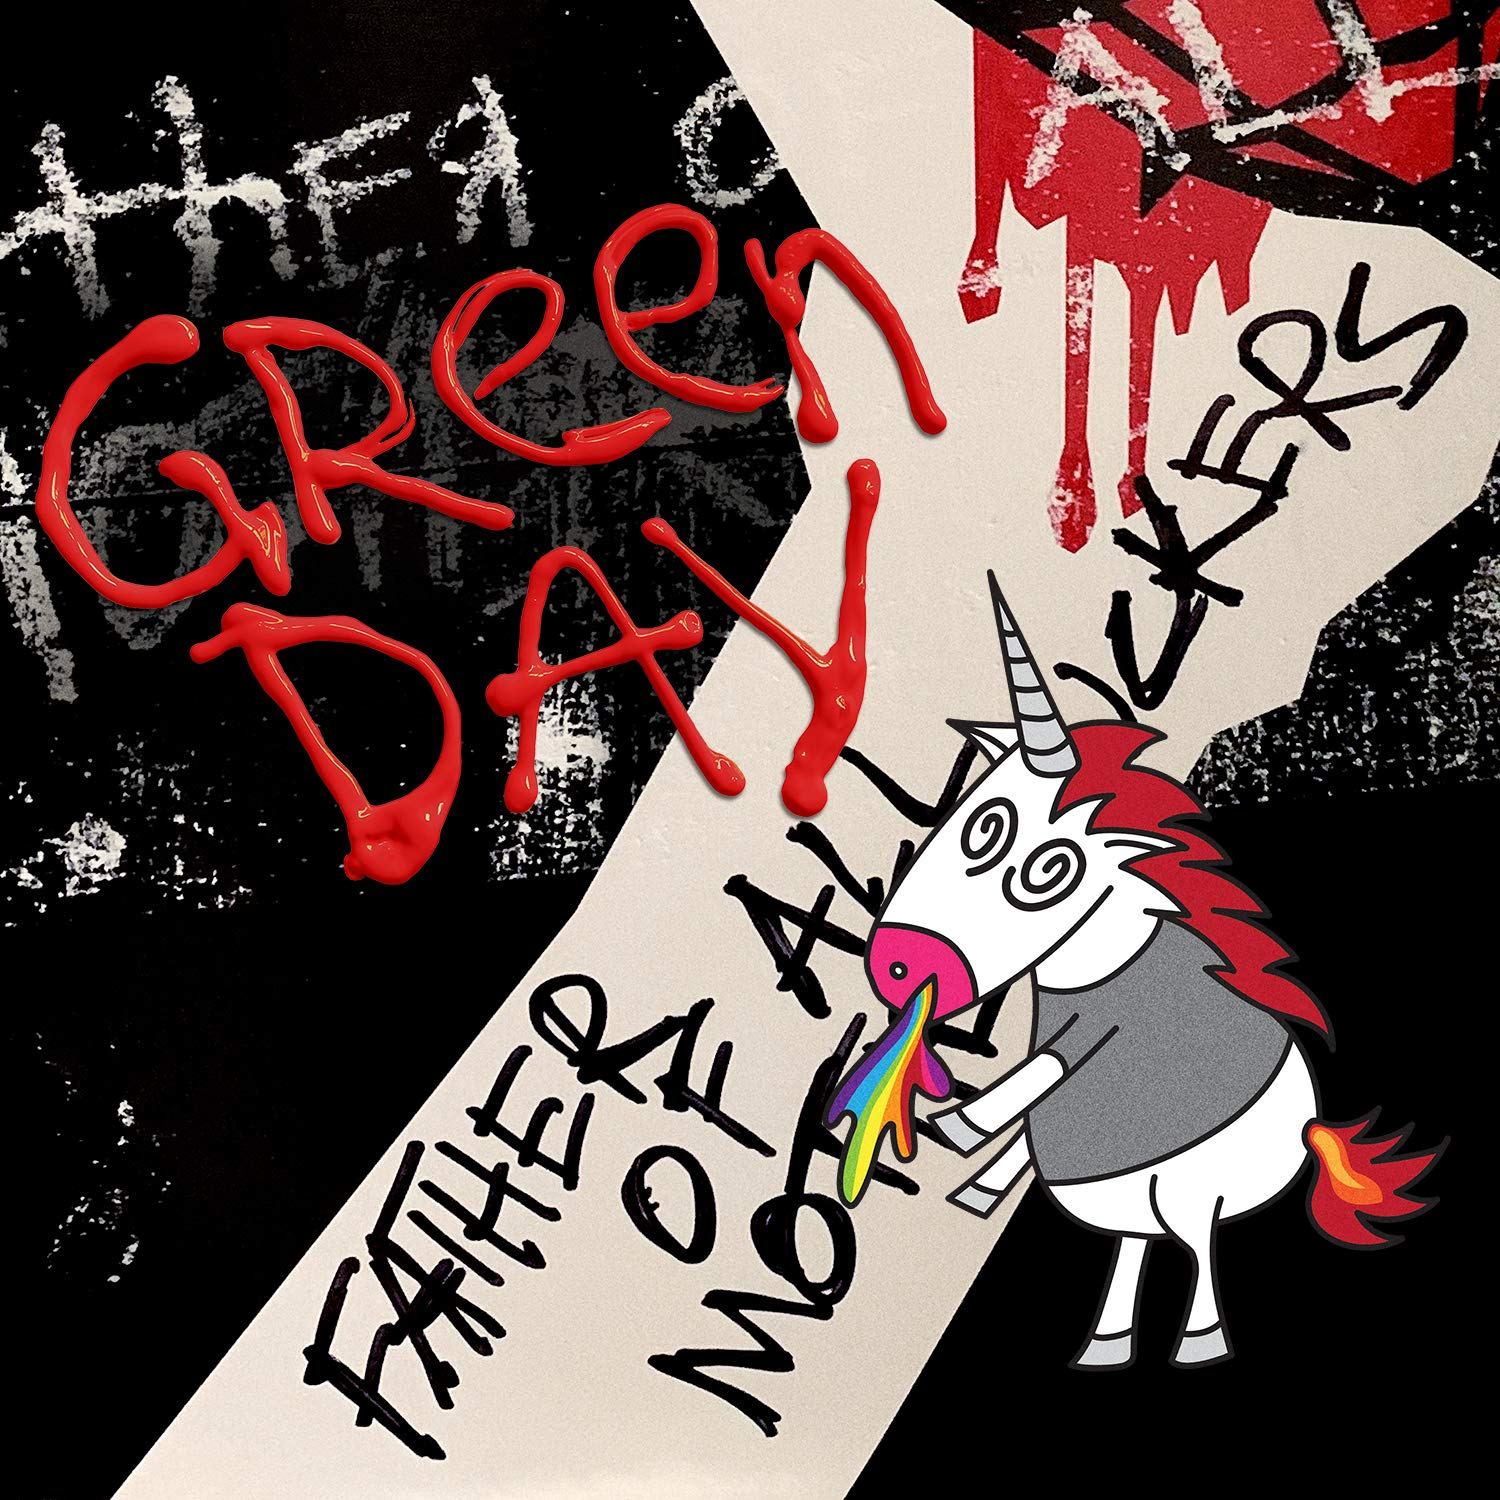 Afbeeldingsresultaat voor green day father of all